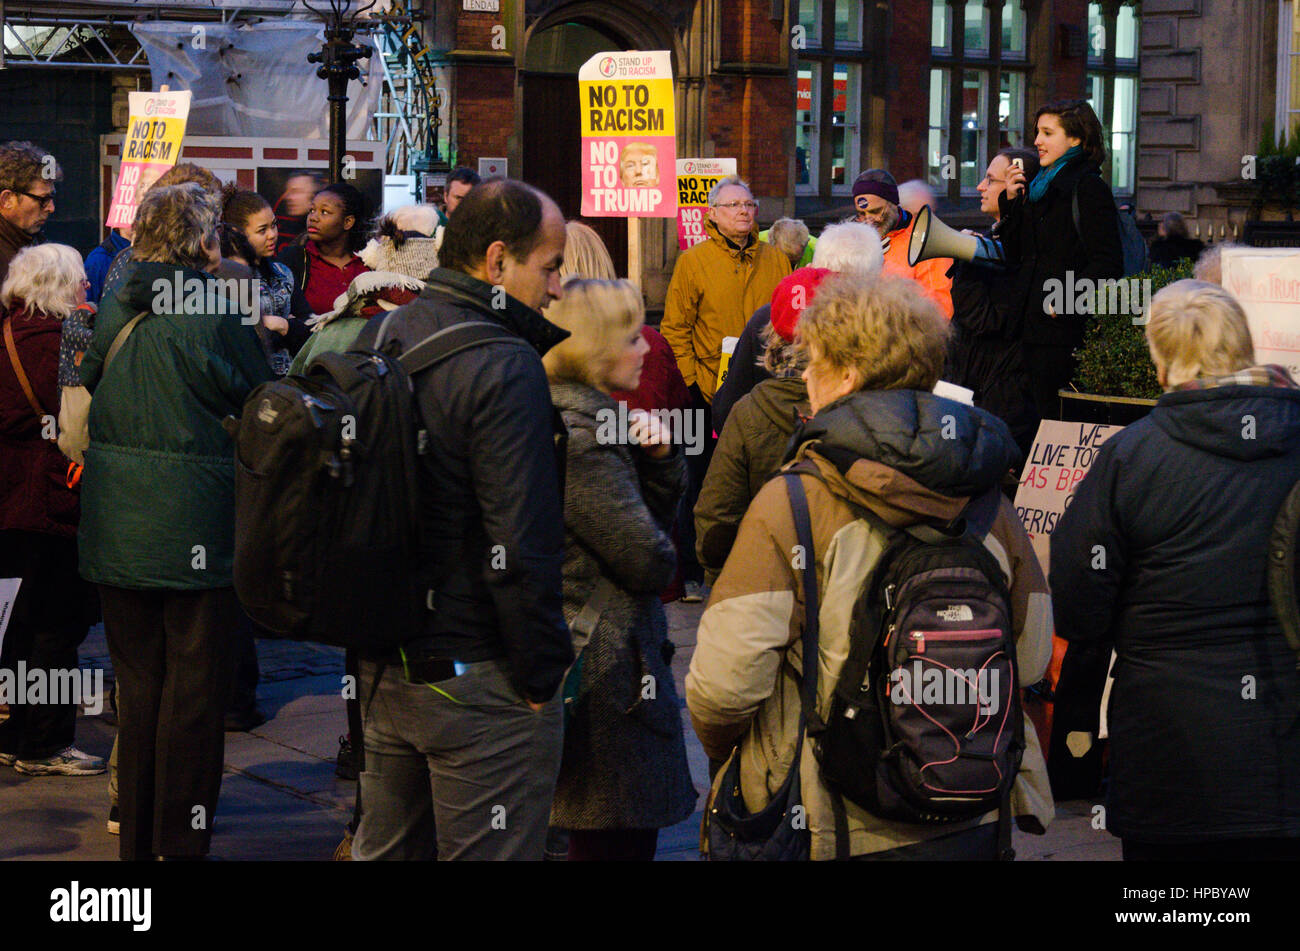 York, England, 20th February 2017, Stand up to Racism and Anti-Trump Rally, People protesting Donald Trump's - Stock Image